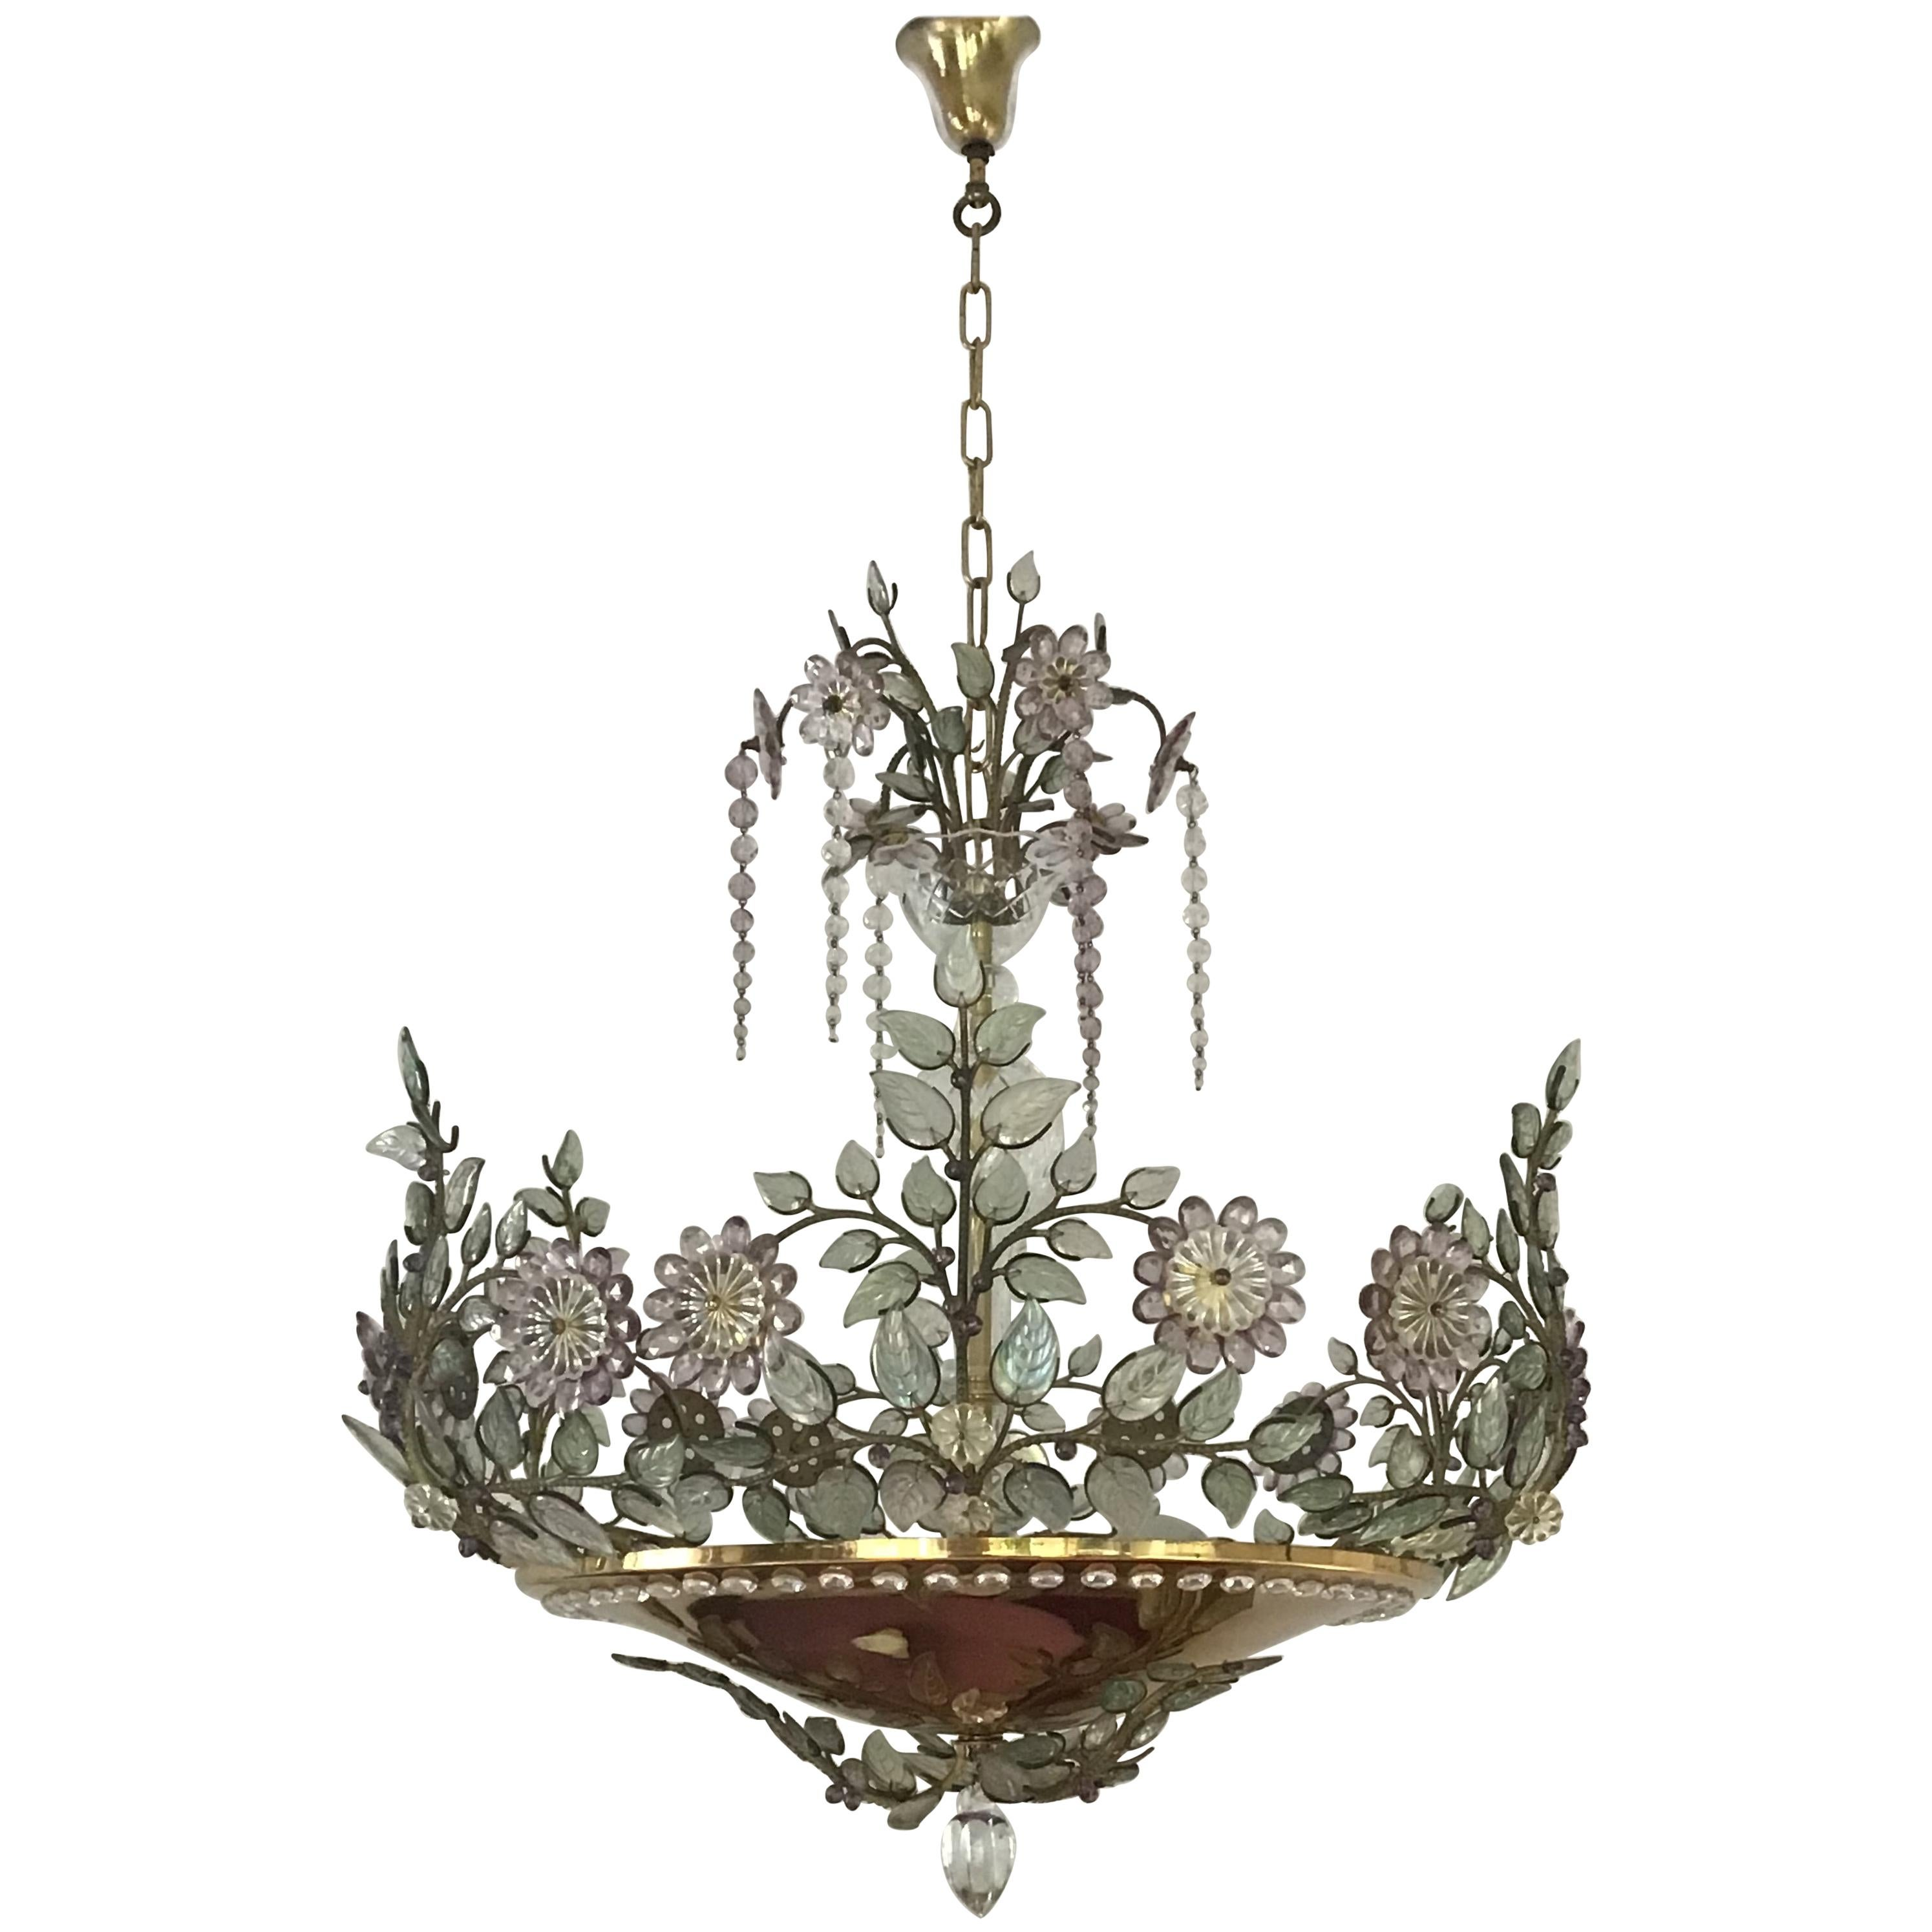 Rare Amethyst Chandelier in the Style of Maison Bagues, France, 1950s